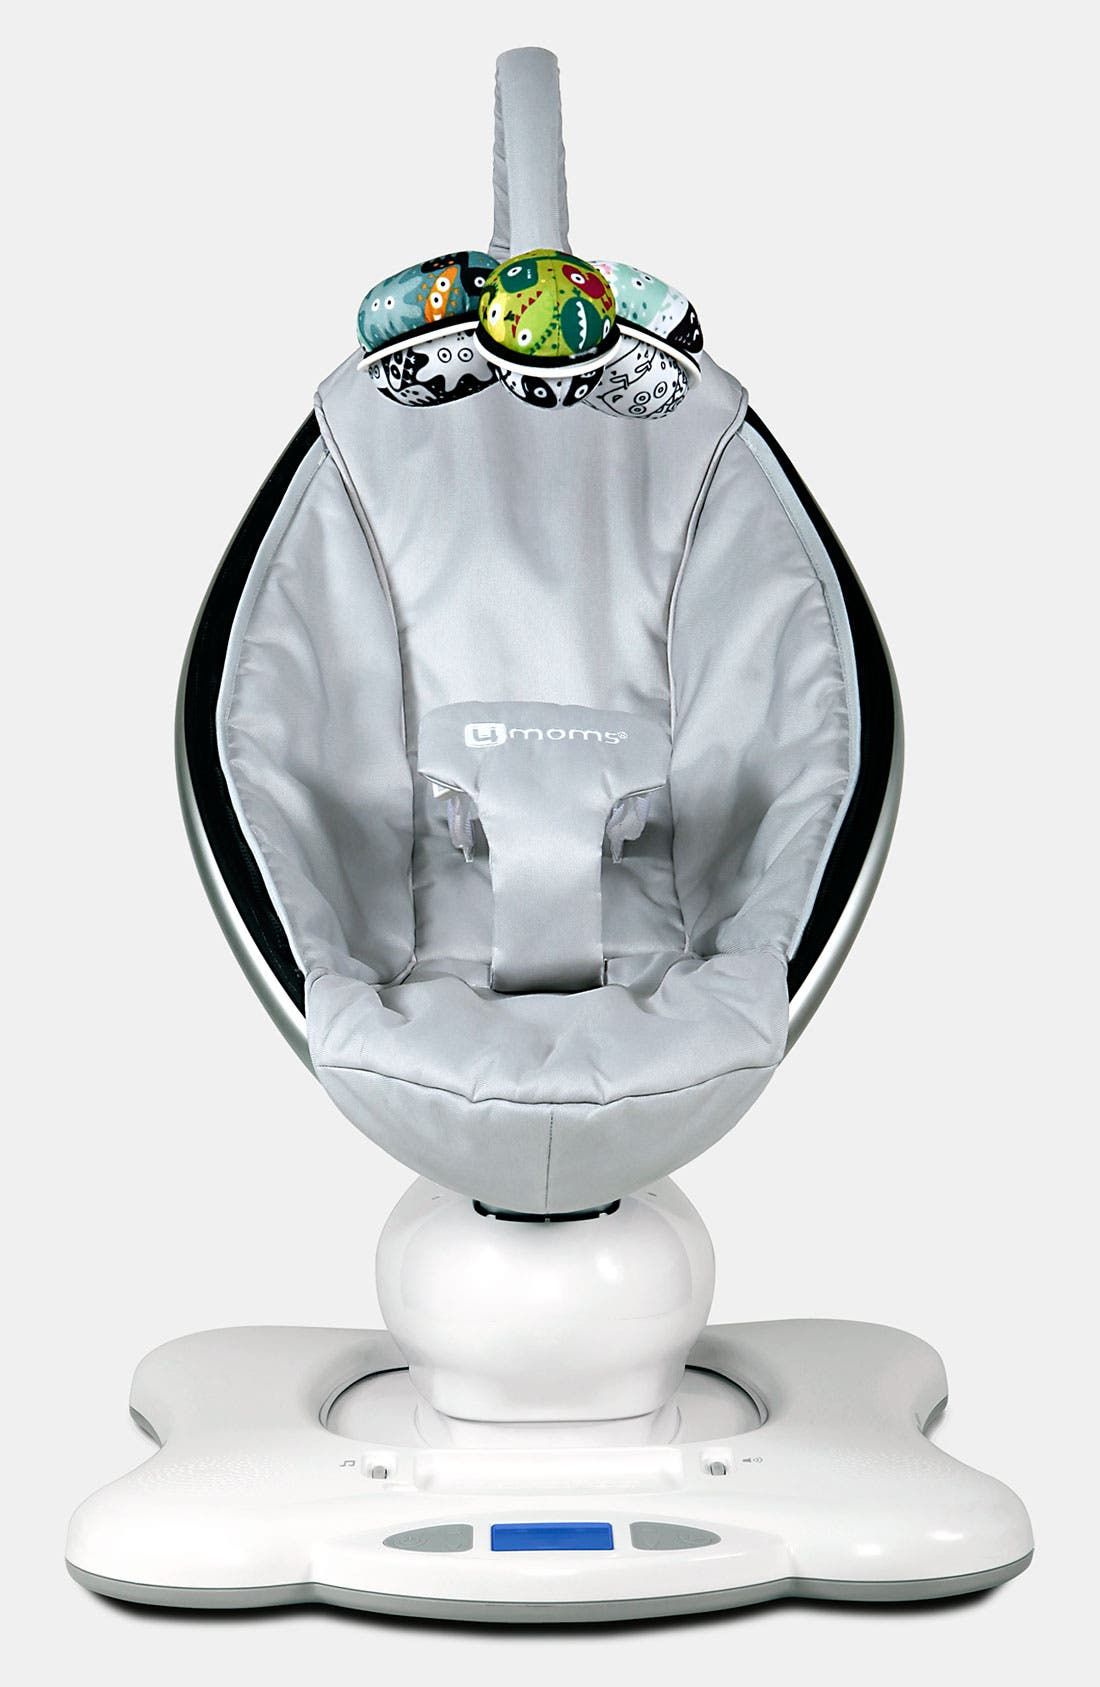 Alternate Image 1 Selected - 4moms 'Classic mamaRoo' Bouncer Seat (Infant)